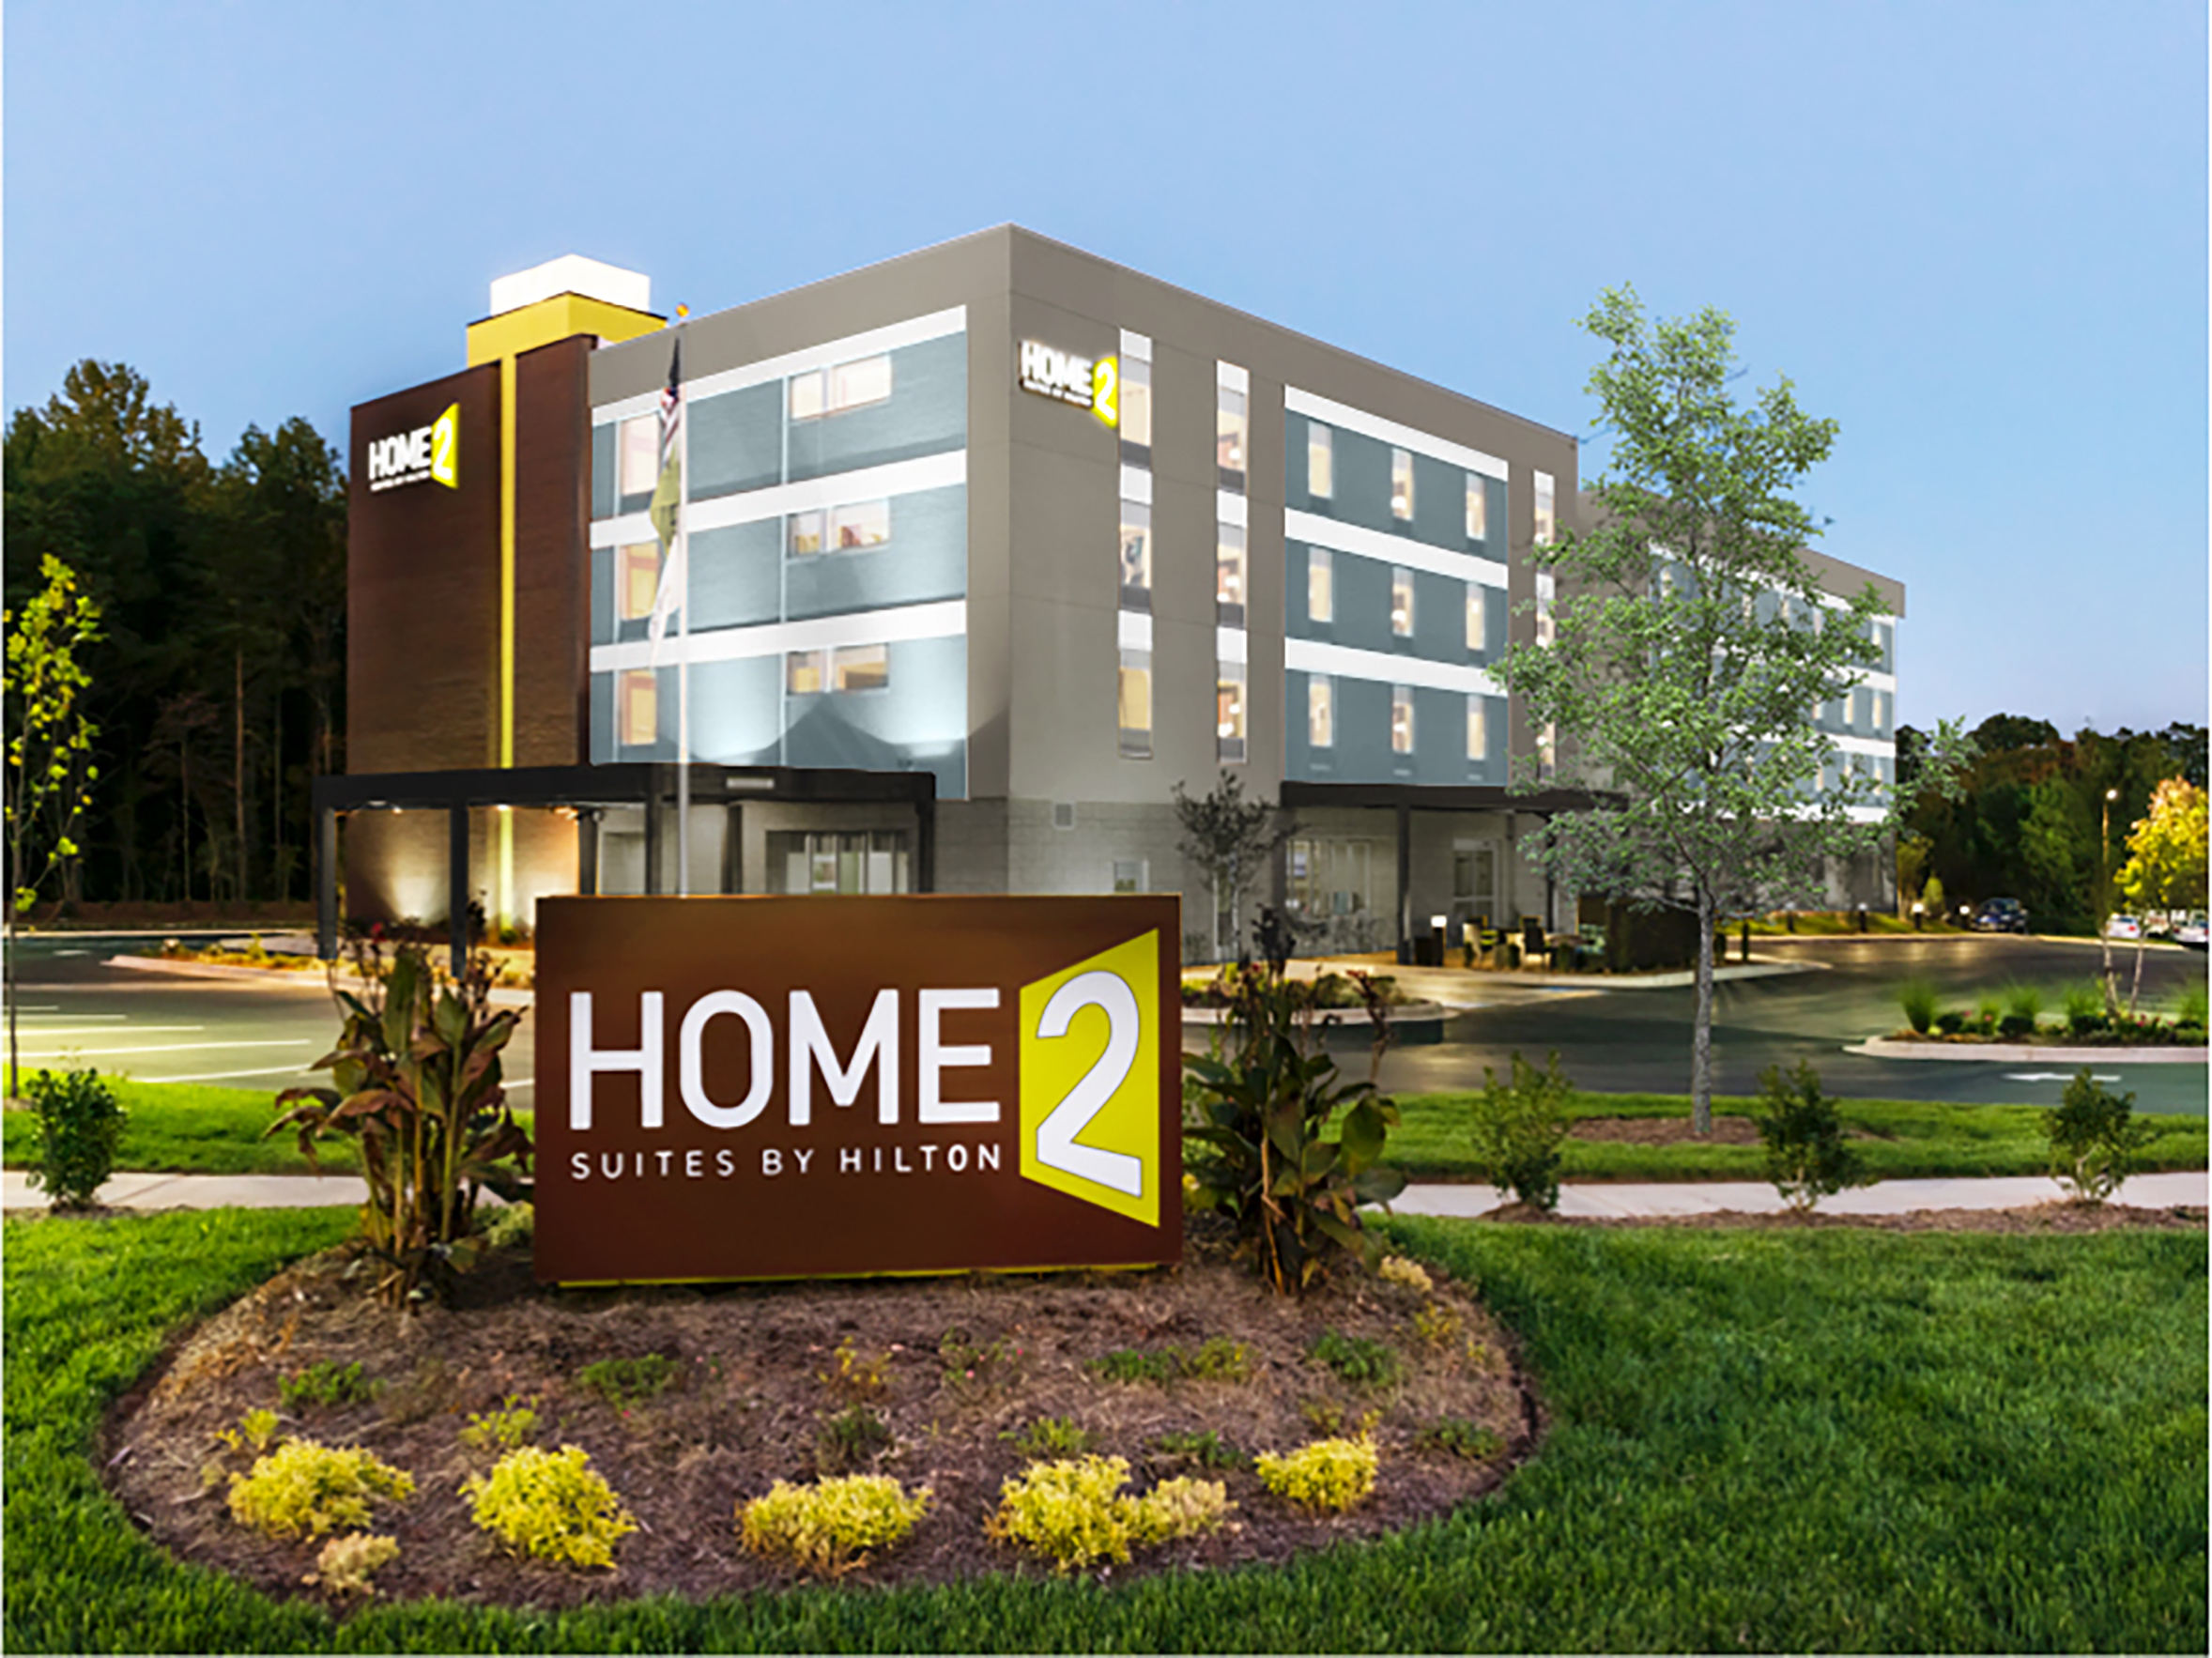 Home2 suites brings a modern extended stay option to the for Homes 2